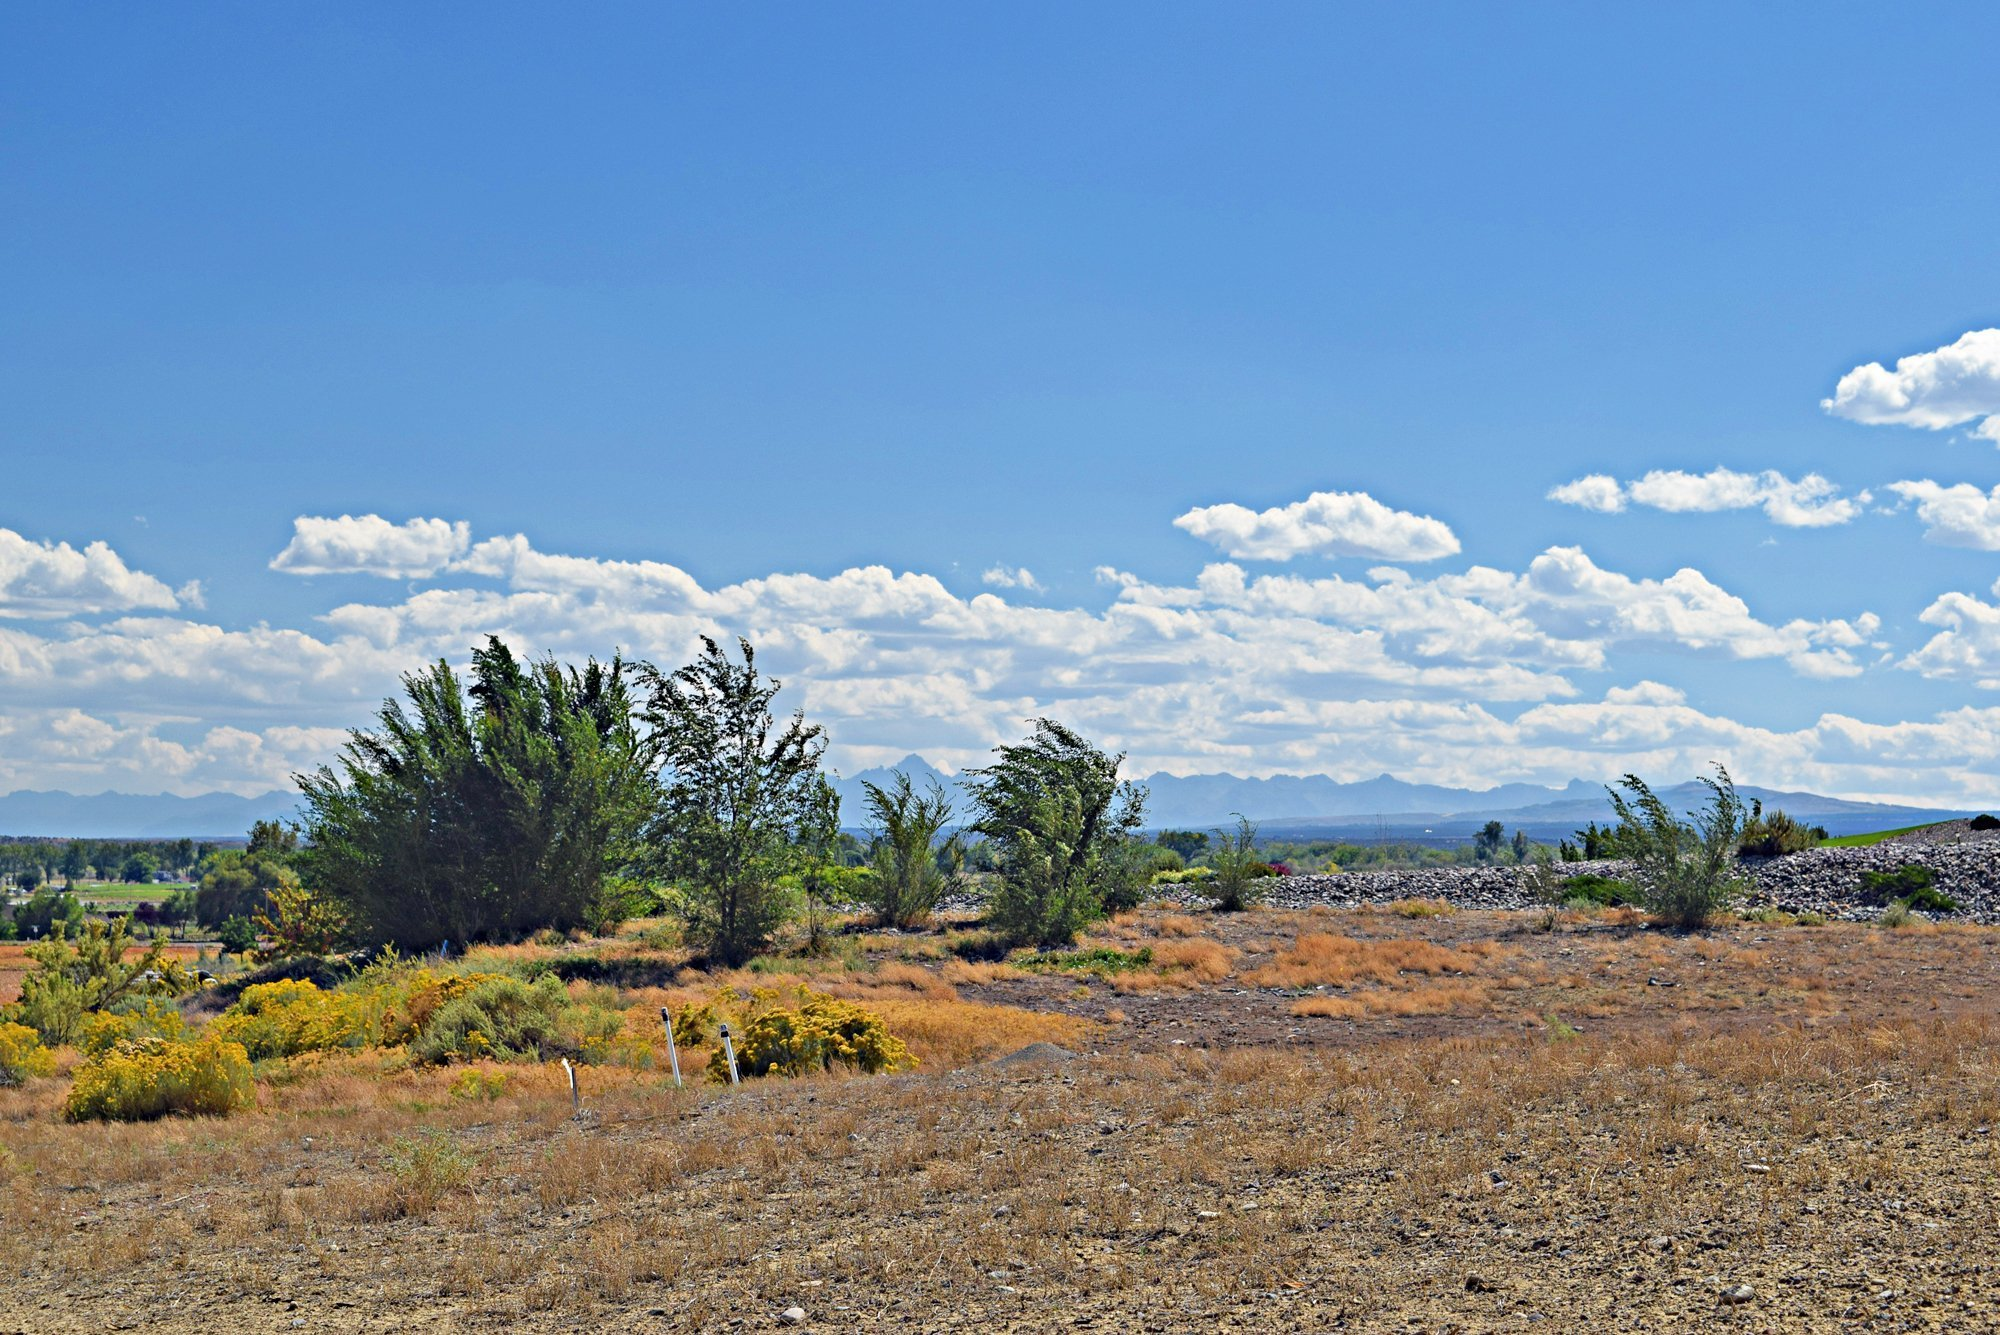 59407 (Lot 12) Lone Eagle Rd Montrose, CO 81403 - Lot for Sale Ready to Build - Atha Team Real Estate